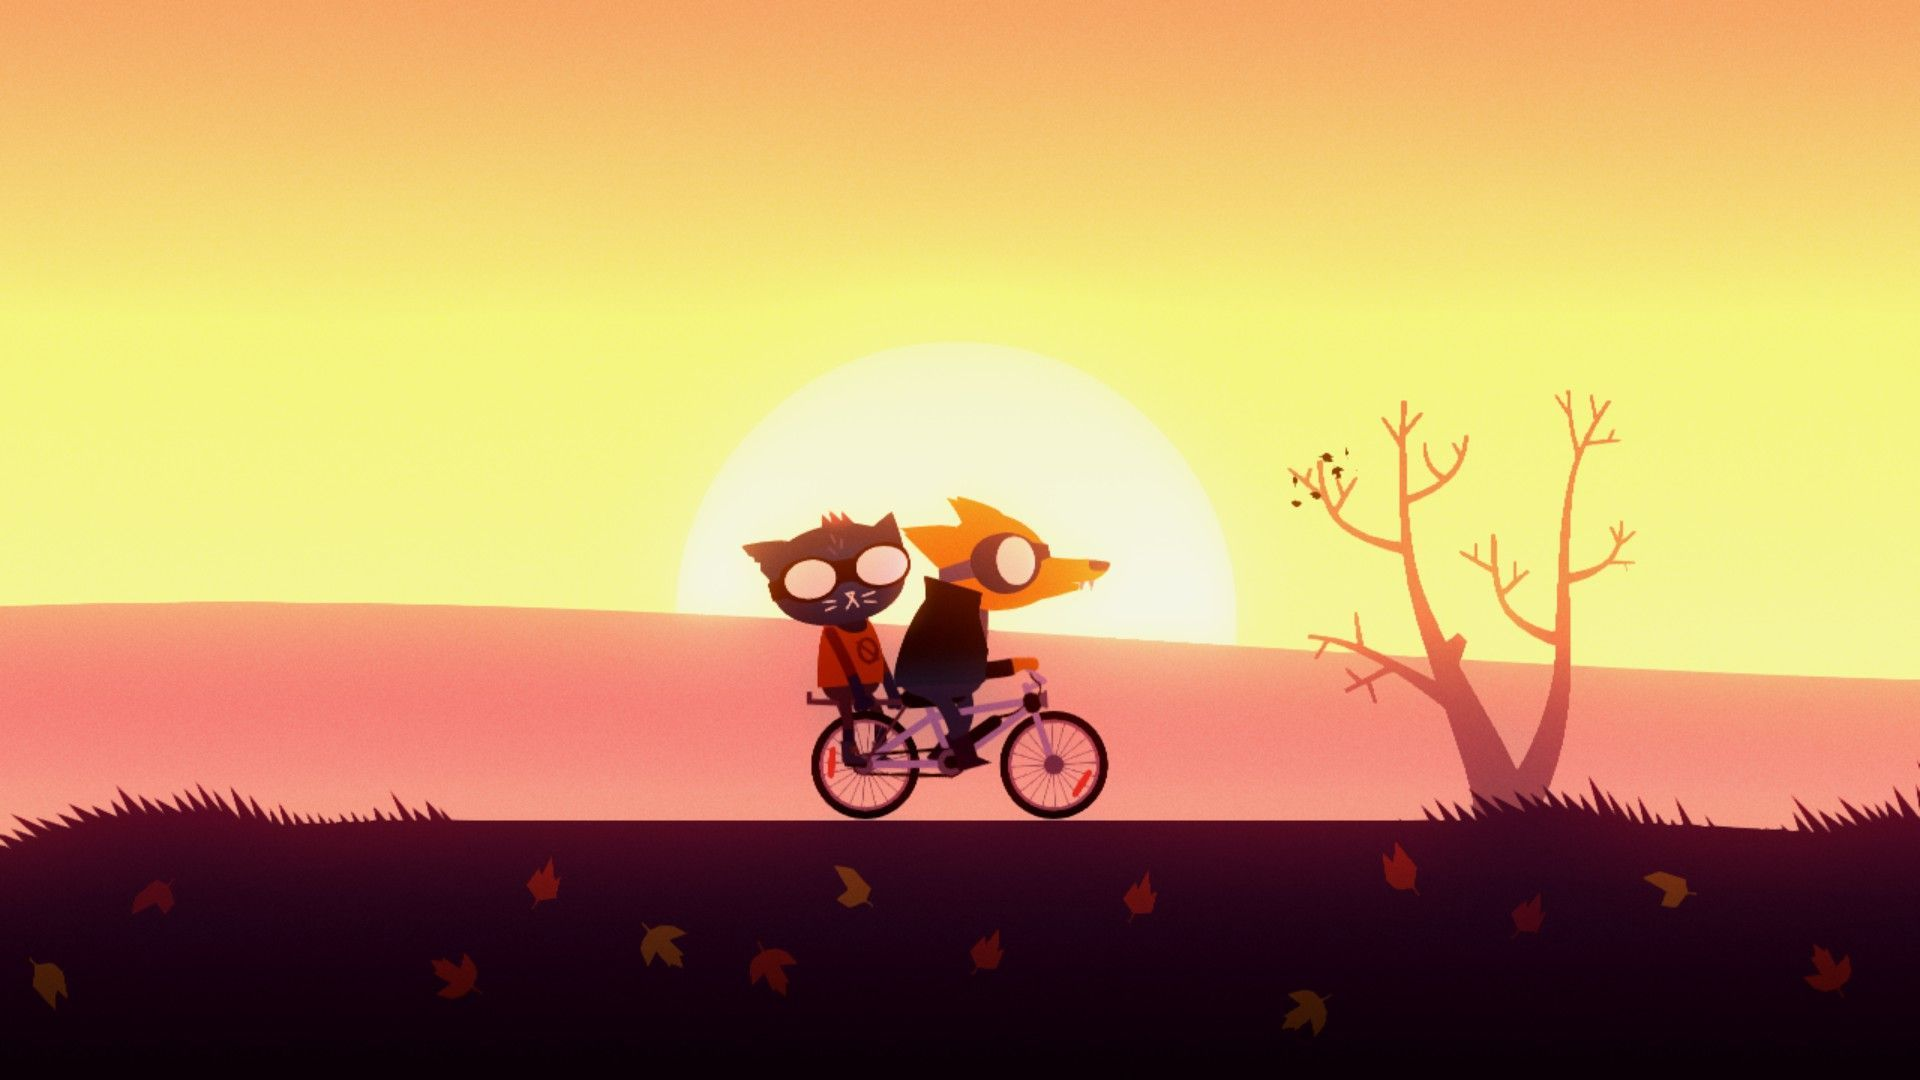 Night In The Woods Wallpaper Google Search Night In The Wood Wood Images Wallpaper Backgrounds